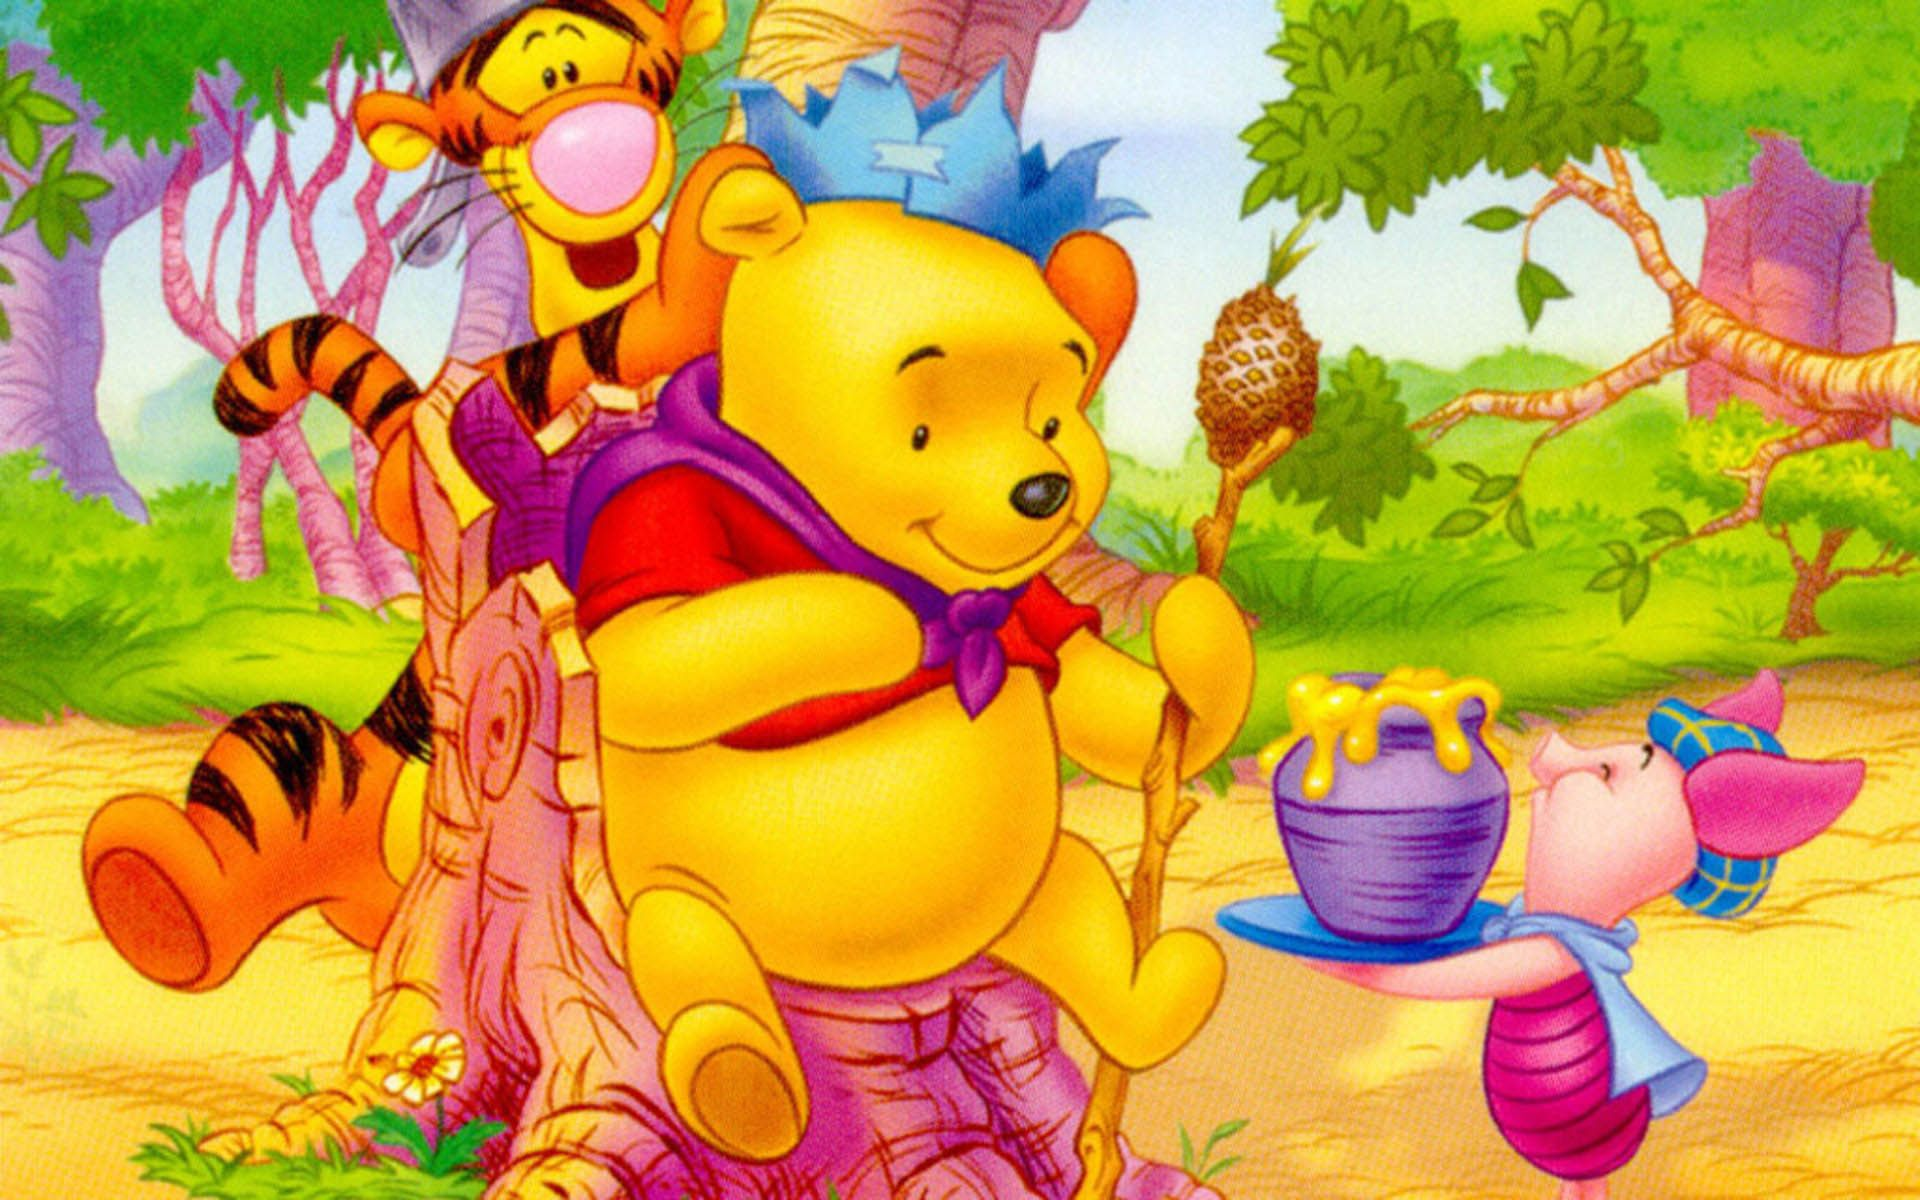 Winnie The Pooh Beautiful Hd Wallpapers All Hd Wallpapers Winnie The Pooh Winnie The Pooh Pictures Pooh